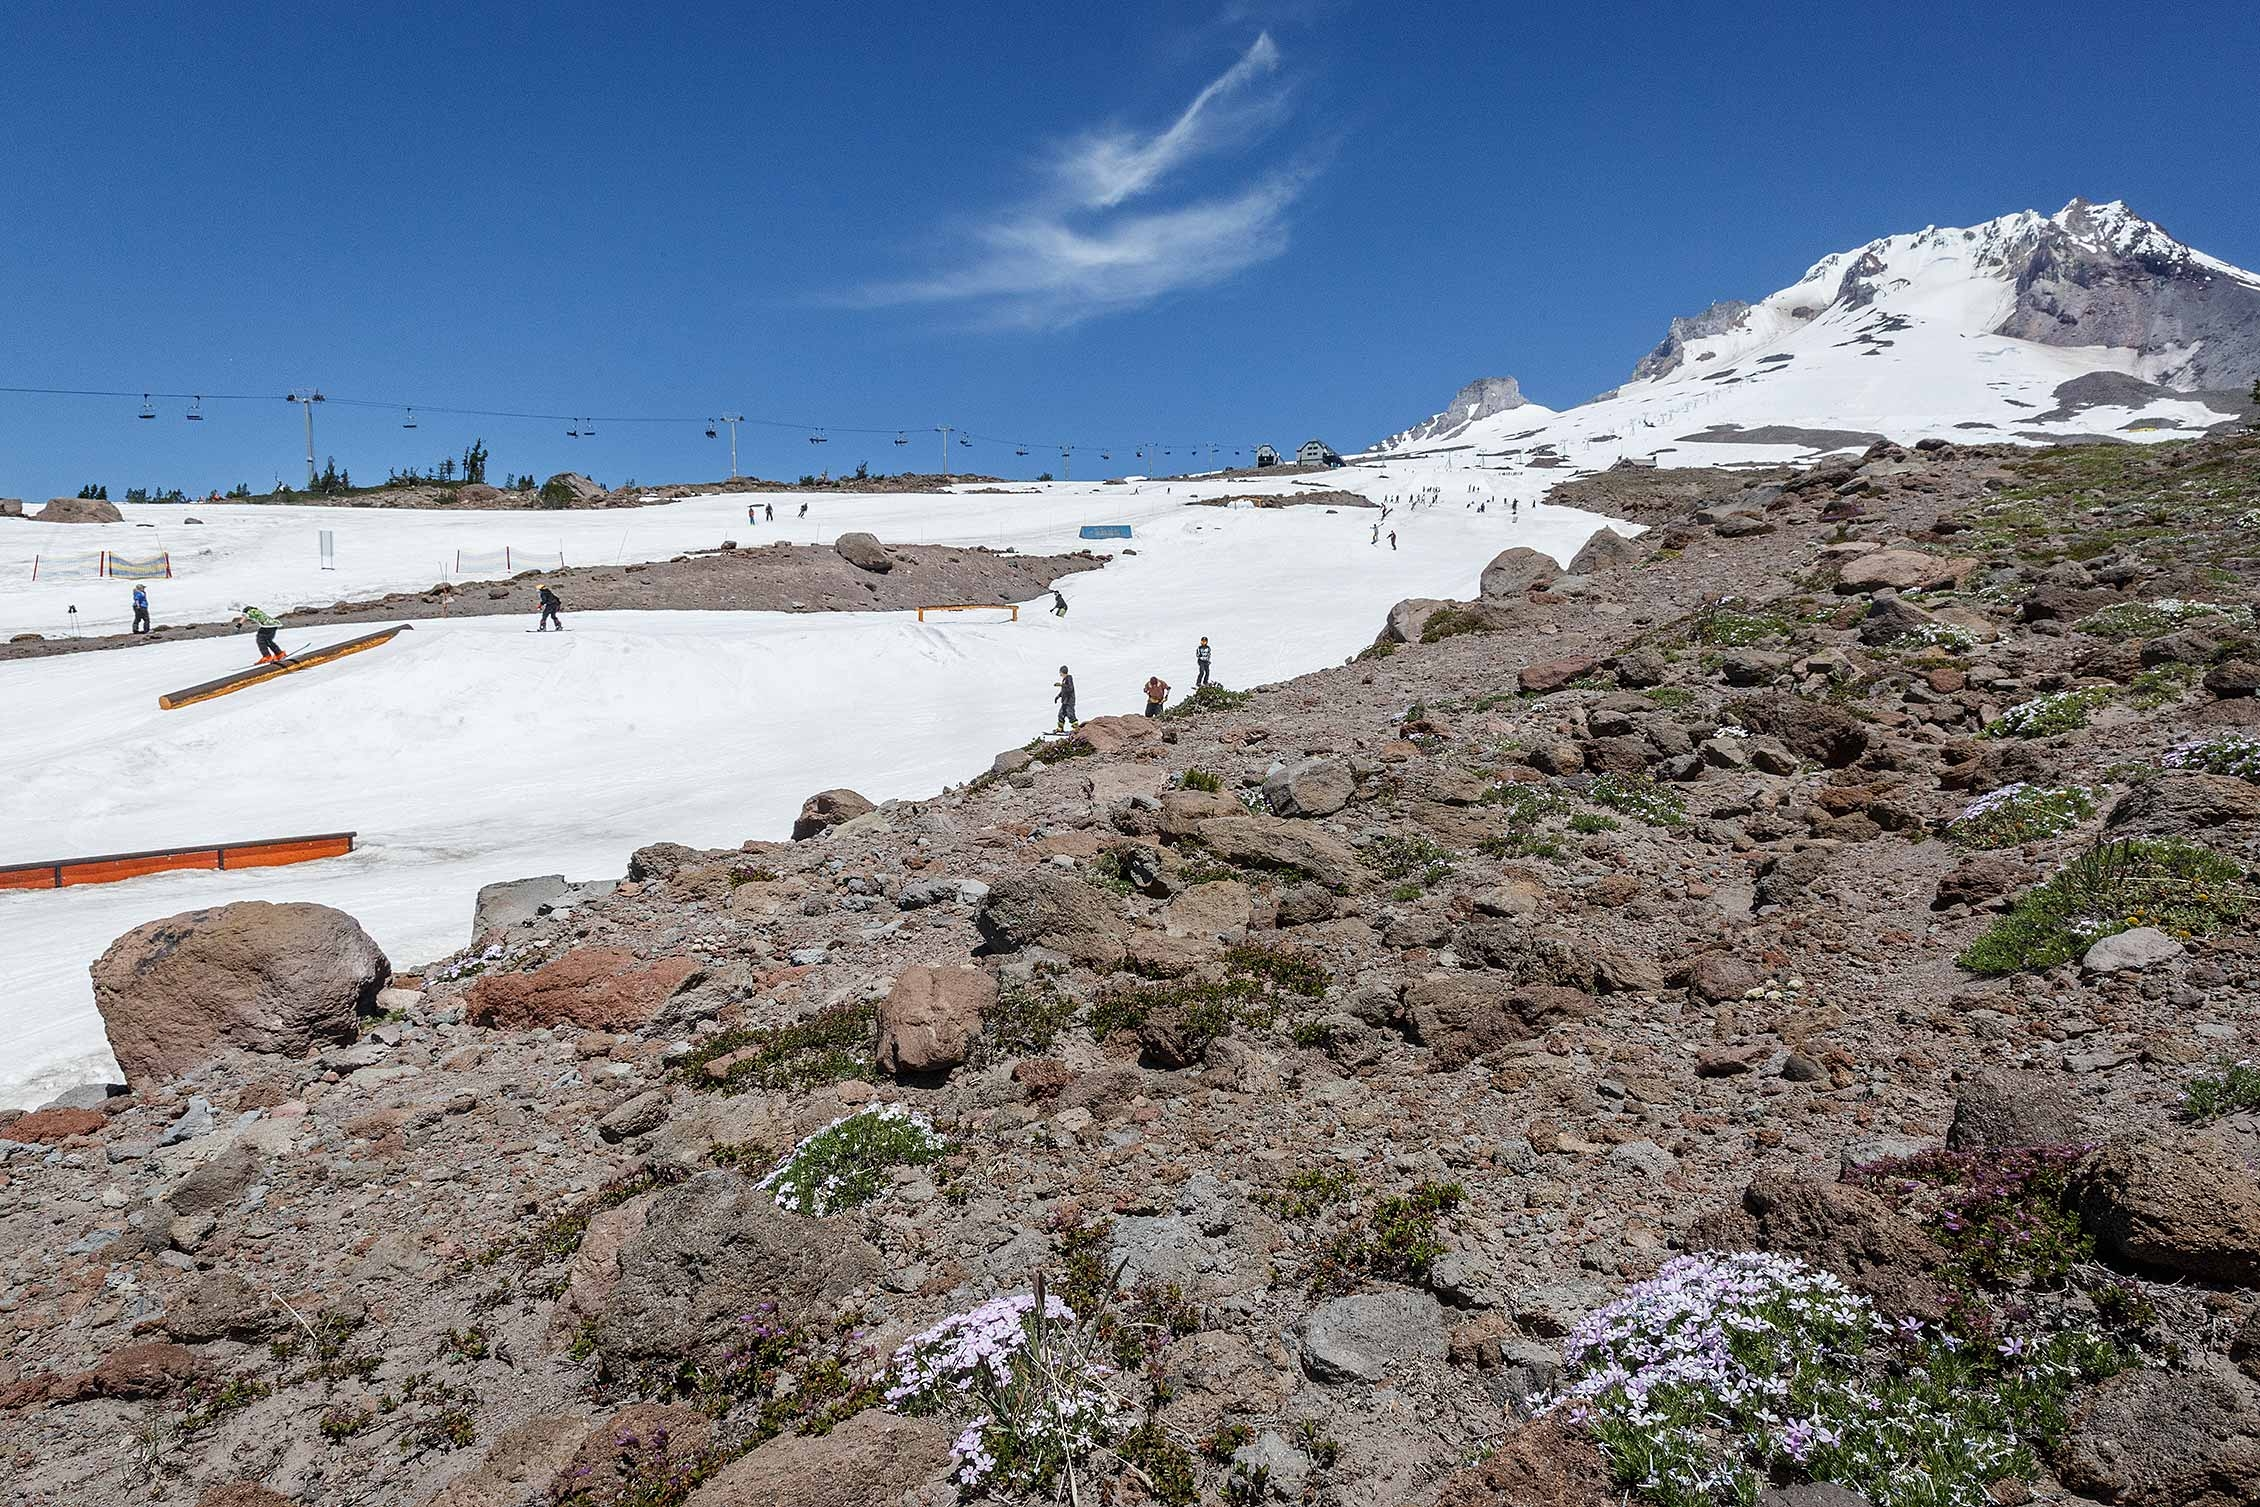 Summer riding up at Timberline Lodge. Get up there and have fun! Image Courtesy: TimberlineLodge.com